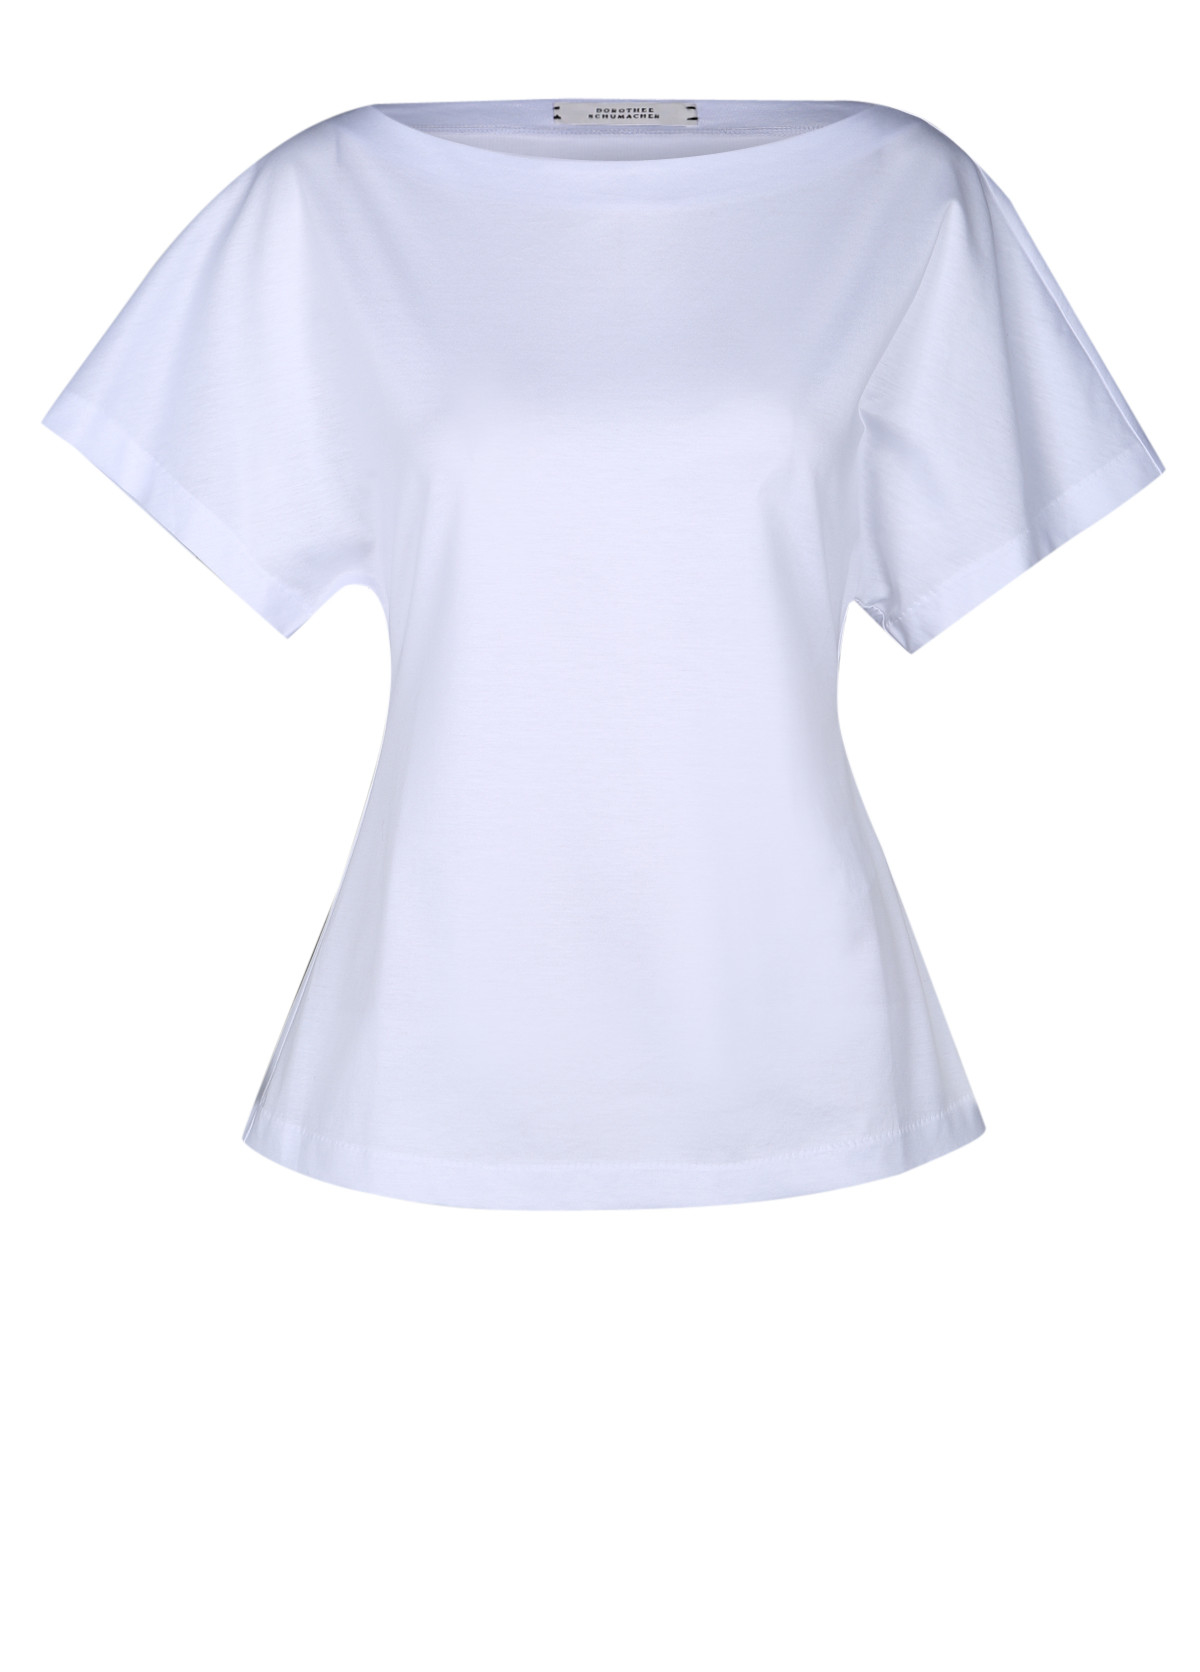 Lyst dorothee schumacher clean couture shirt boatneck 1 for How to clean white dress shirts